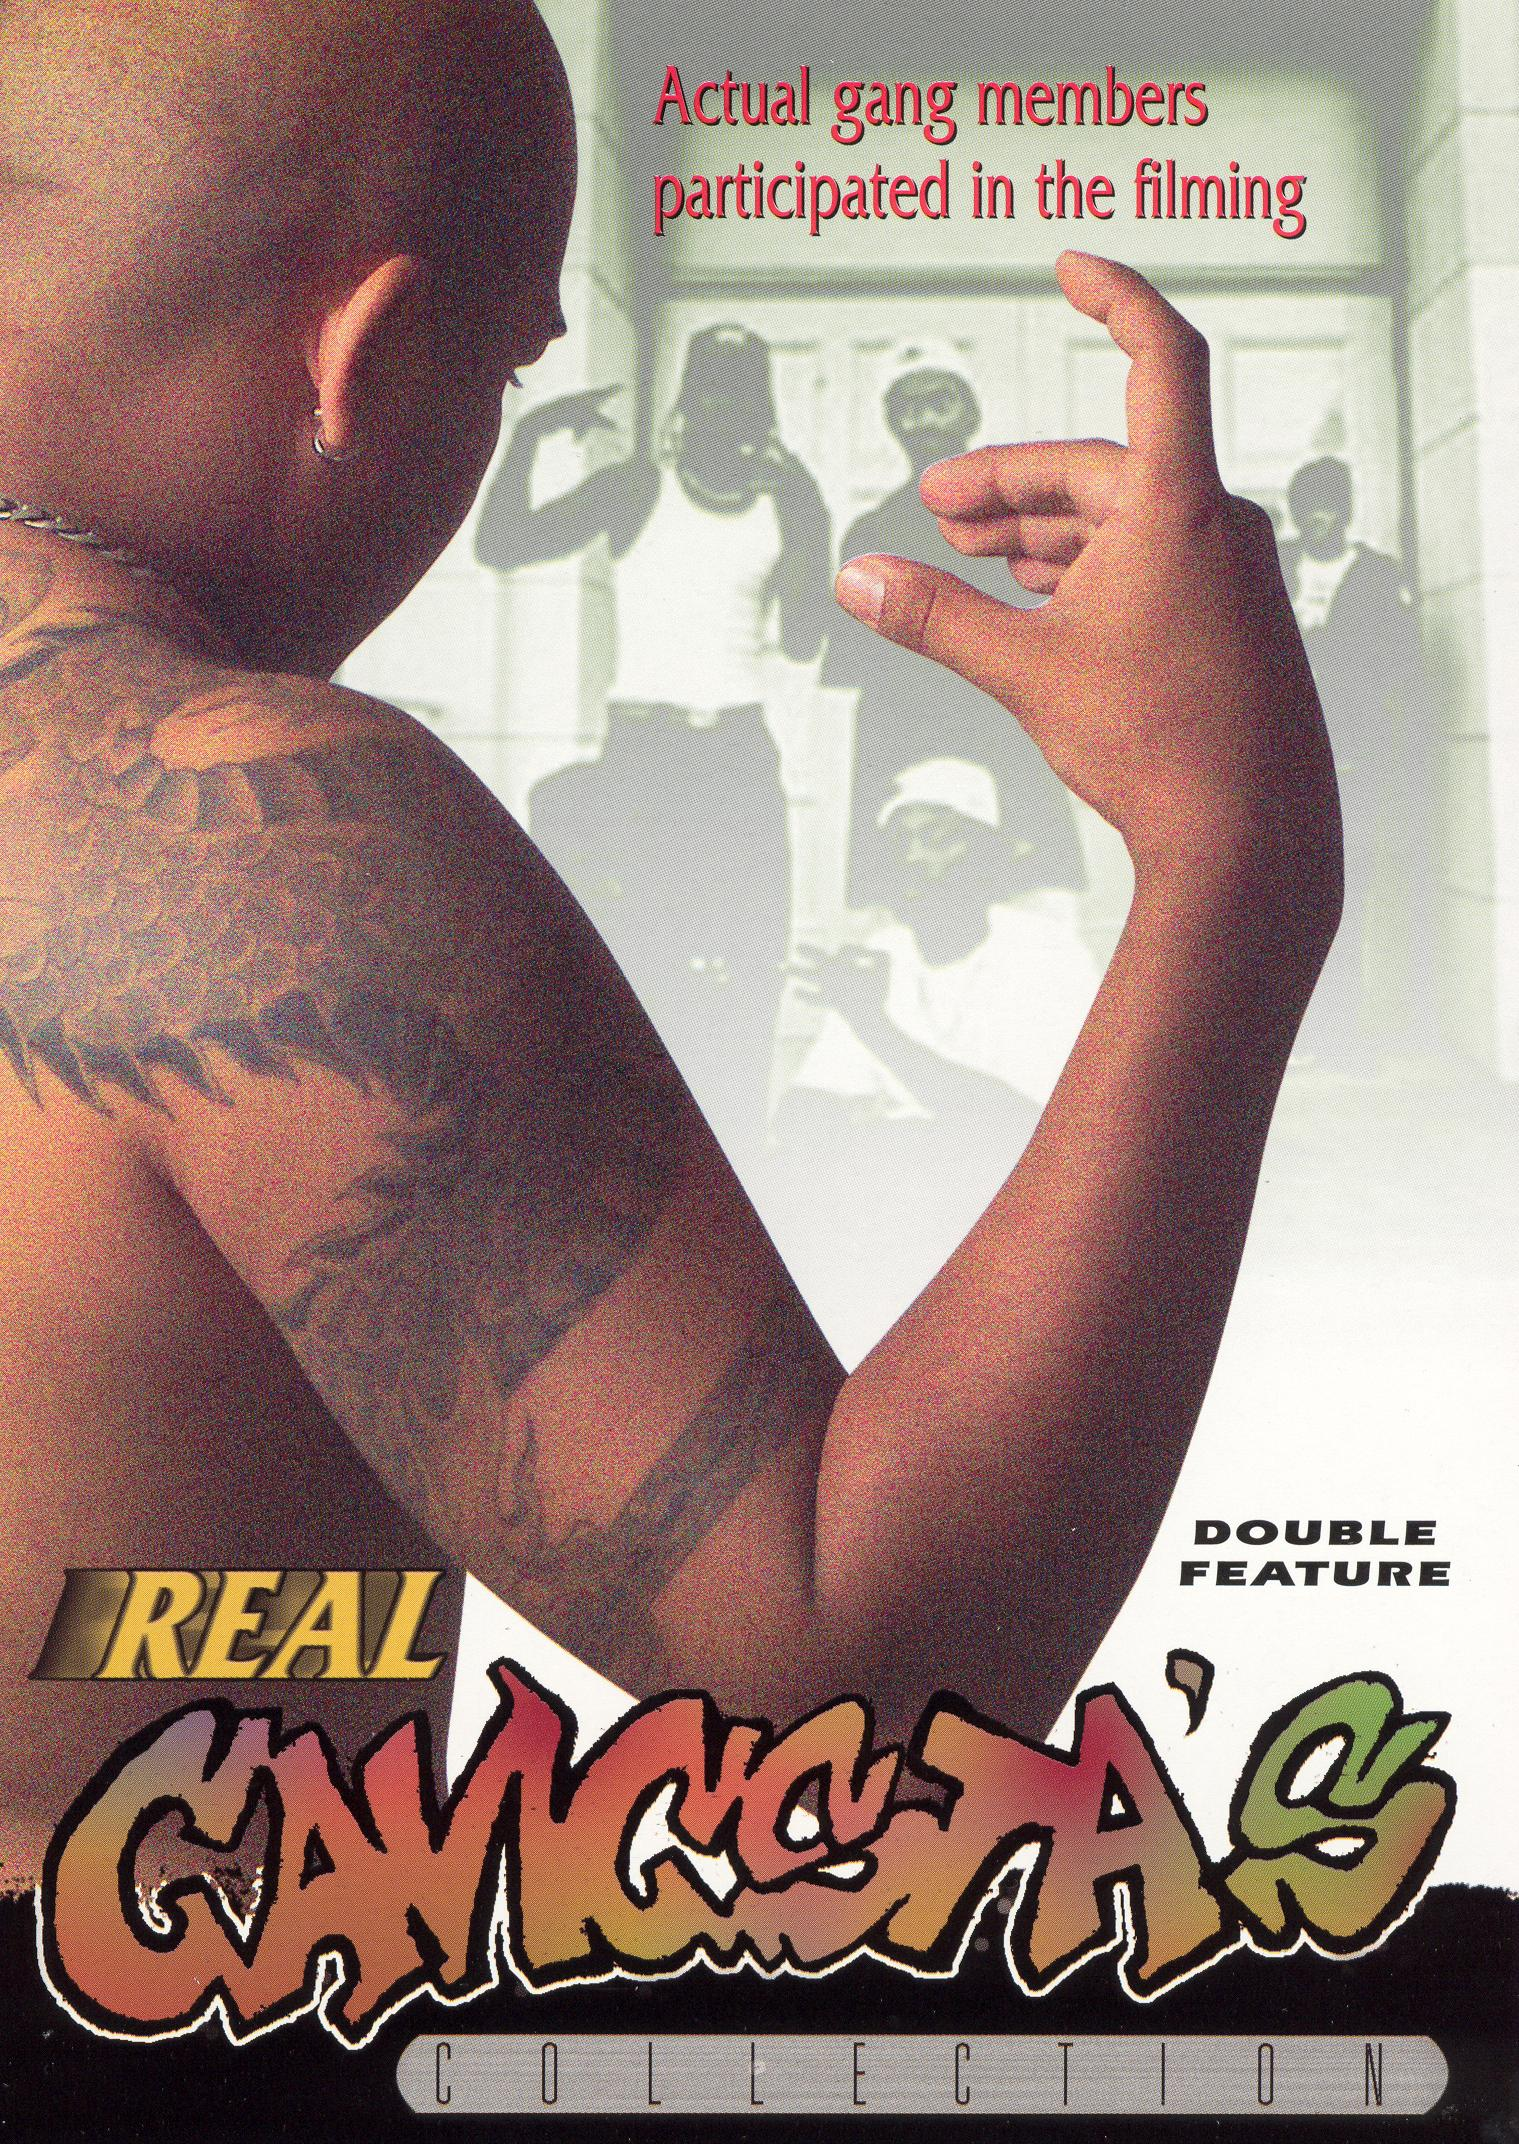 Real Gangsta's Collections